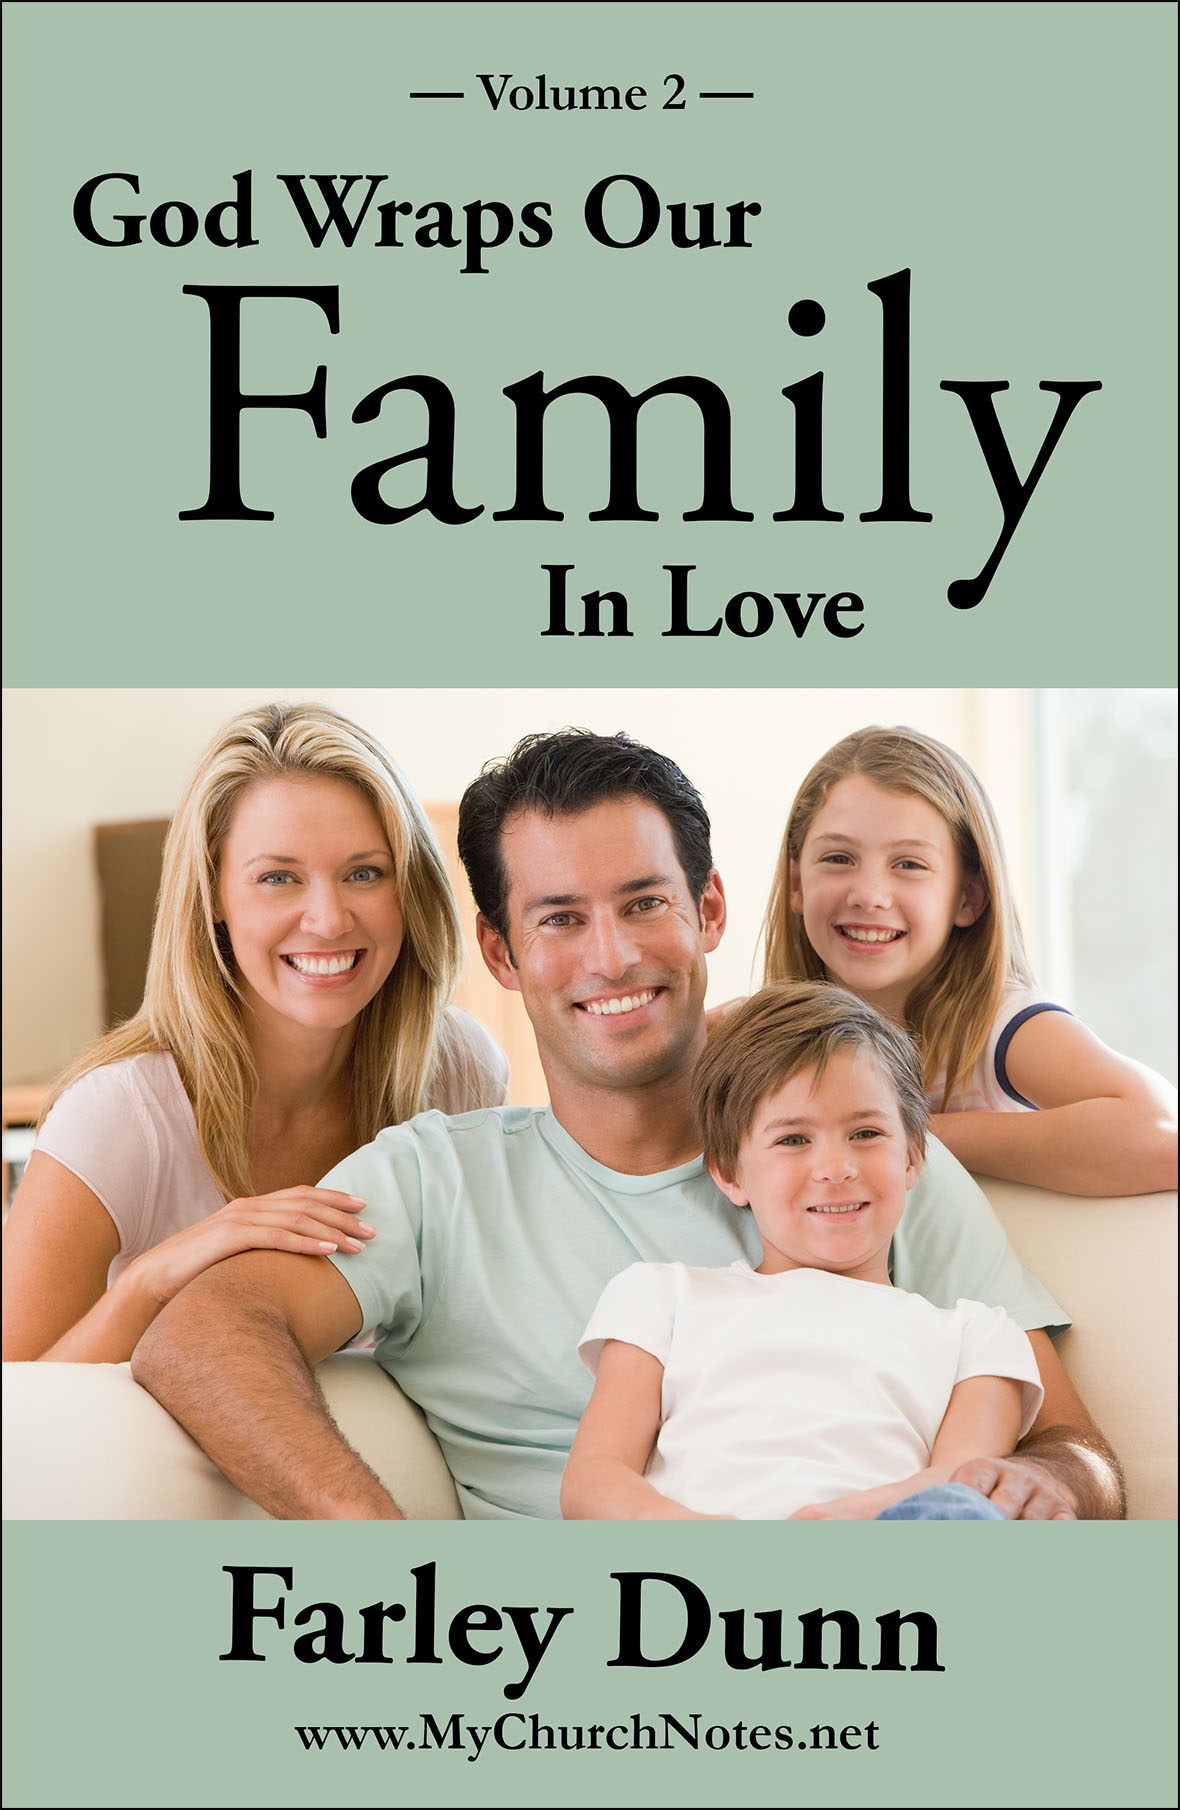 Family Vol 2 Front Cover v2 for Web